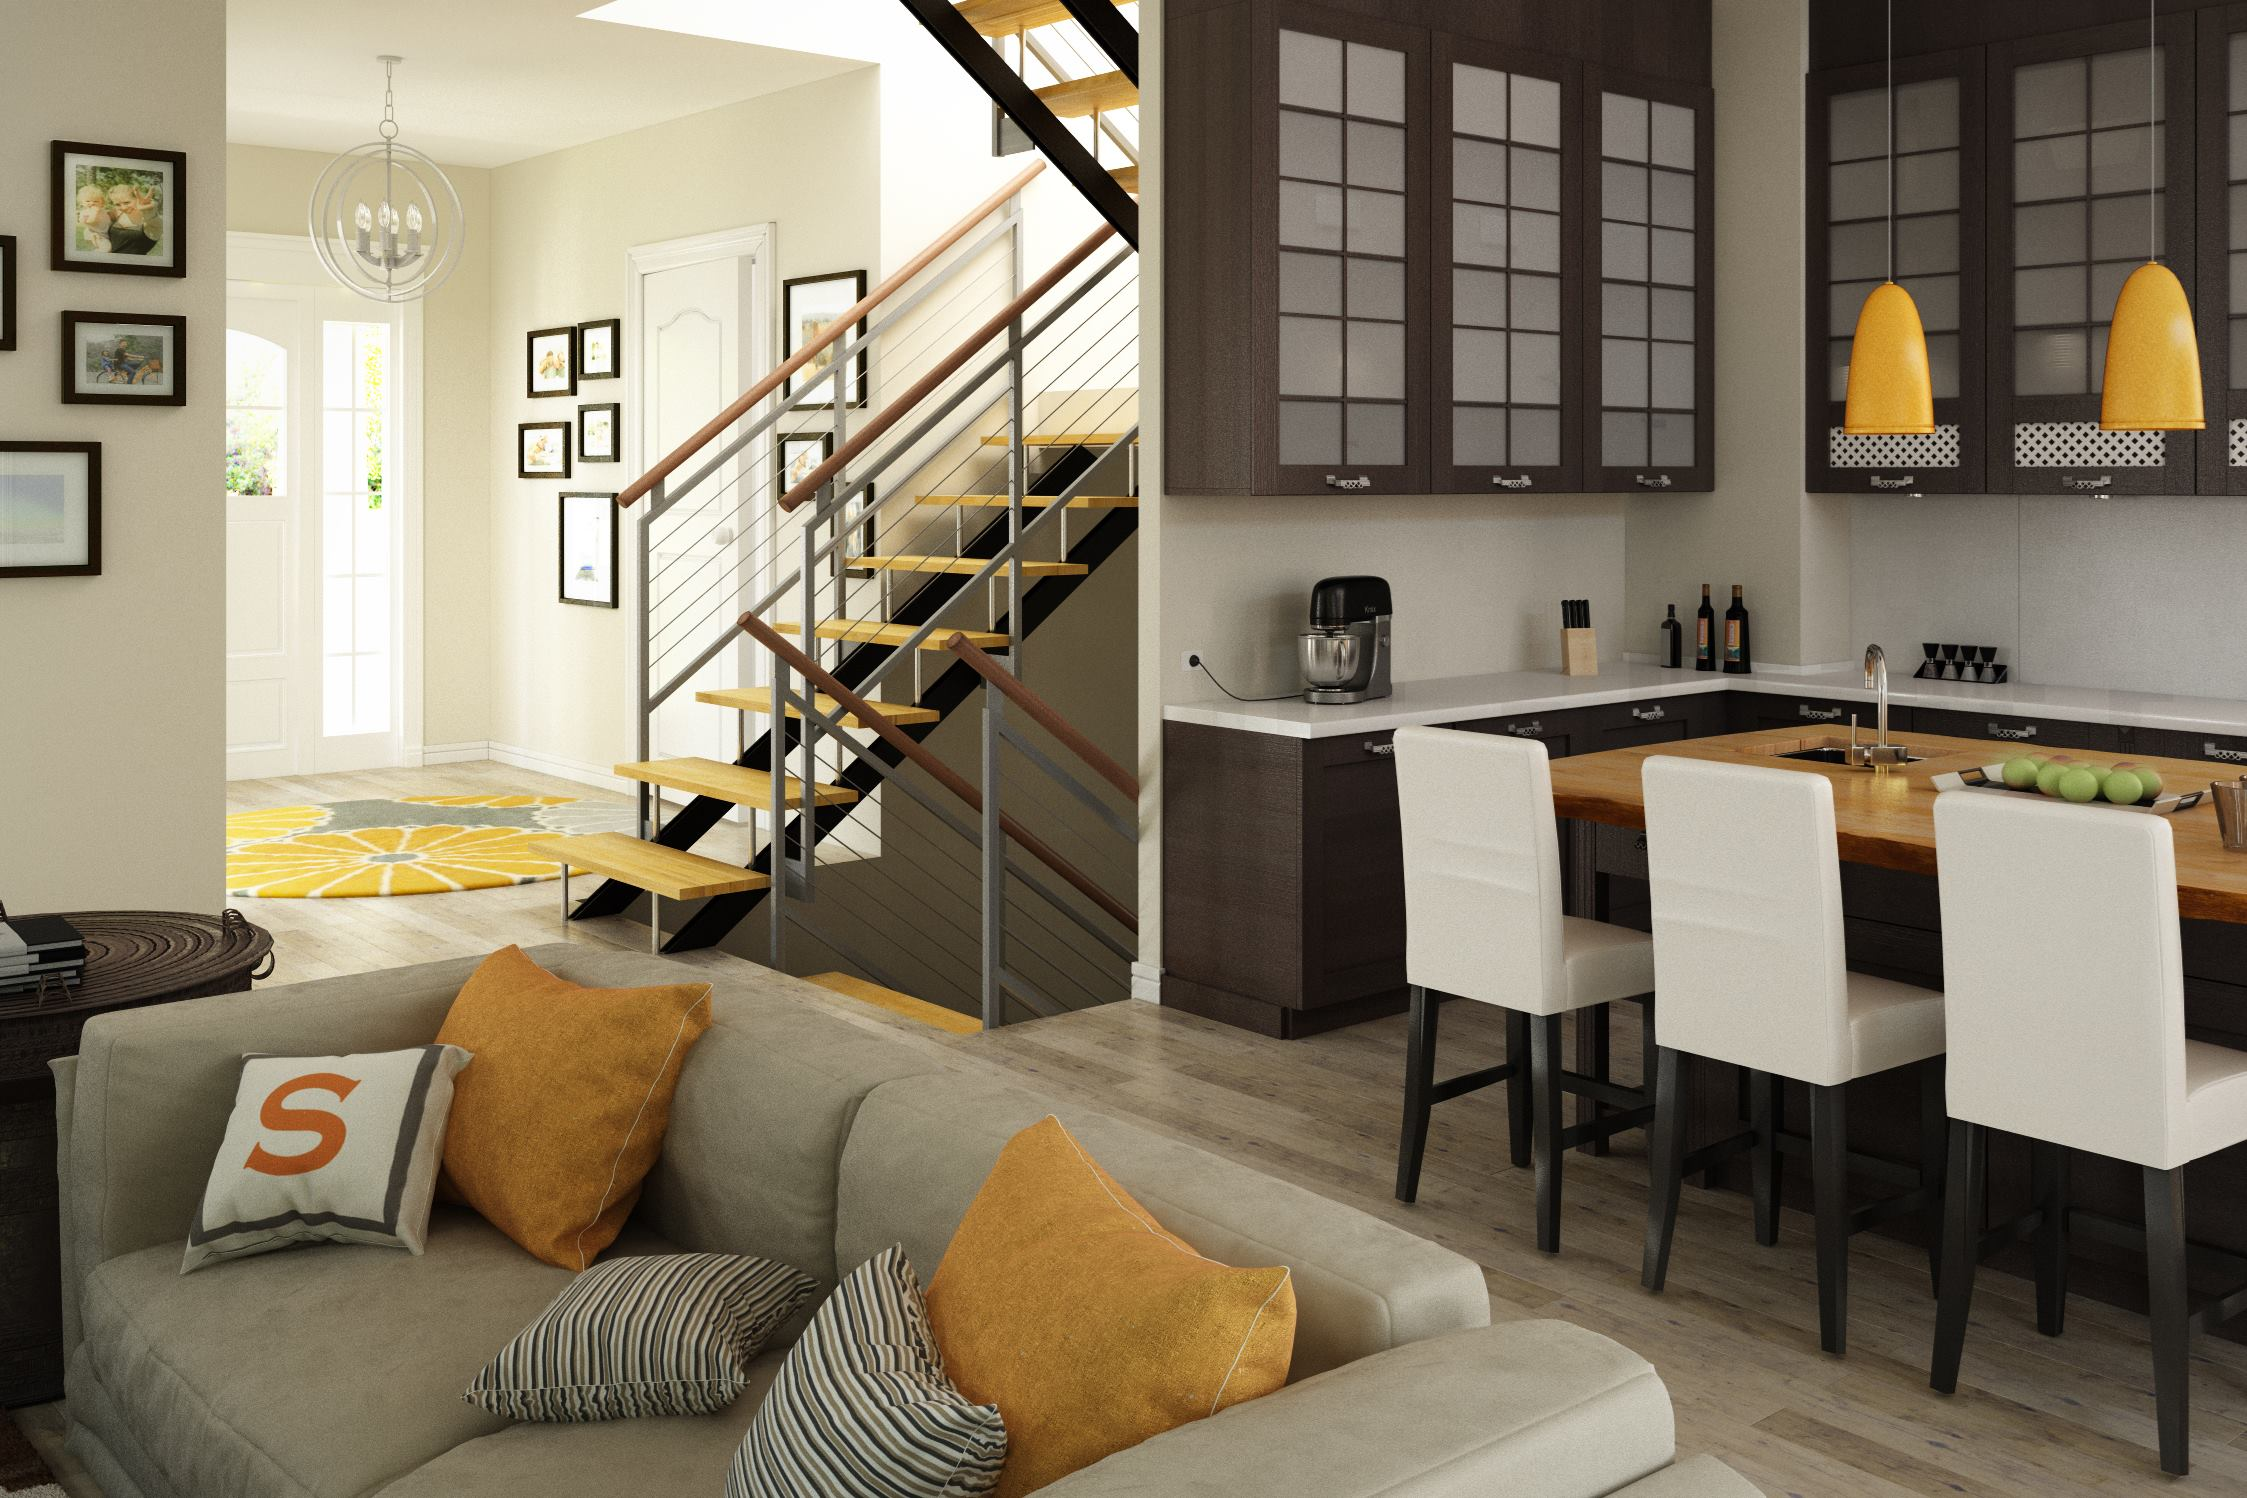 Good Active House Interior Design Driven By Healthy Product Selections|  EcoBuilding Pulse Magazine | Green Building, Green Products, Low VOC,  Recycled Materials, ...